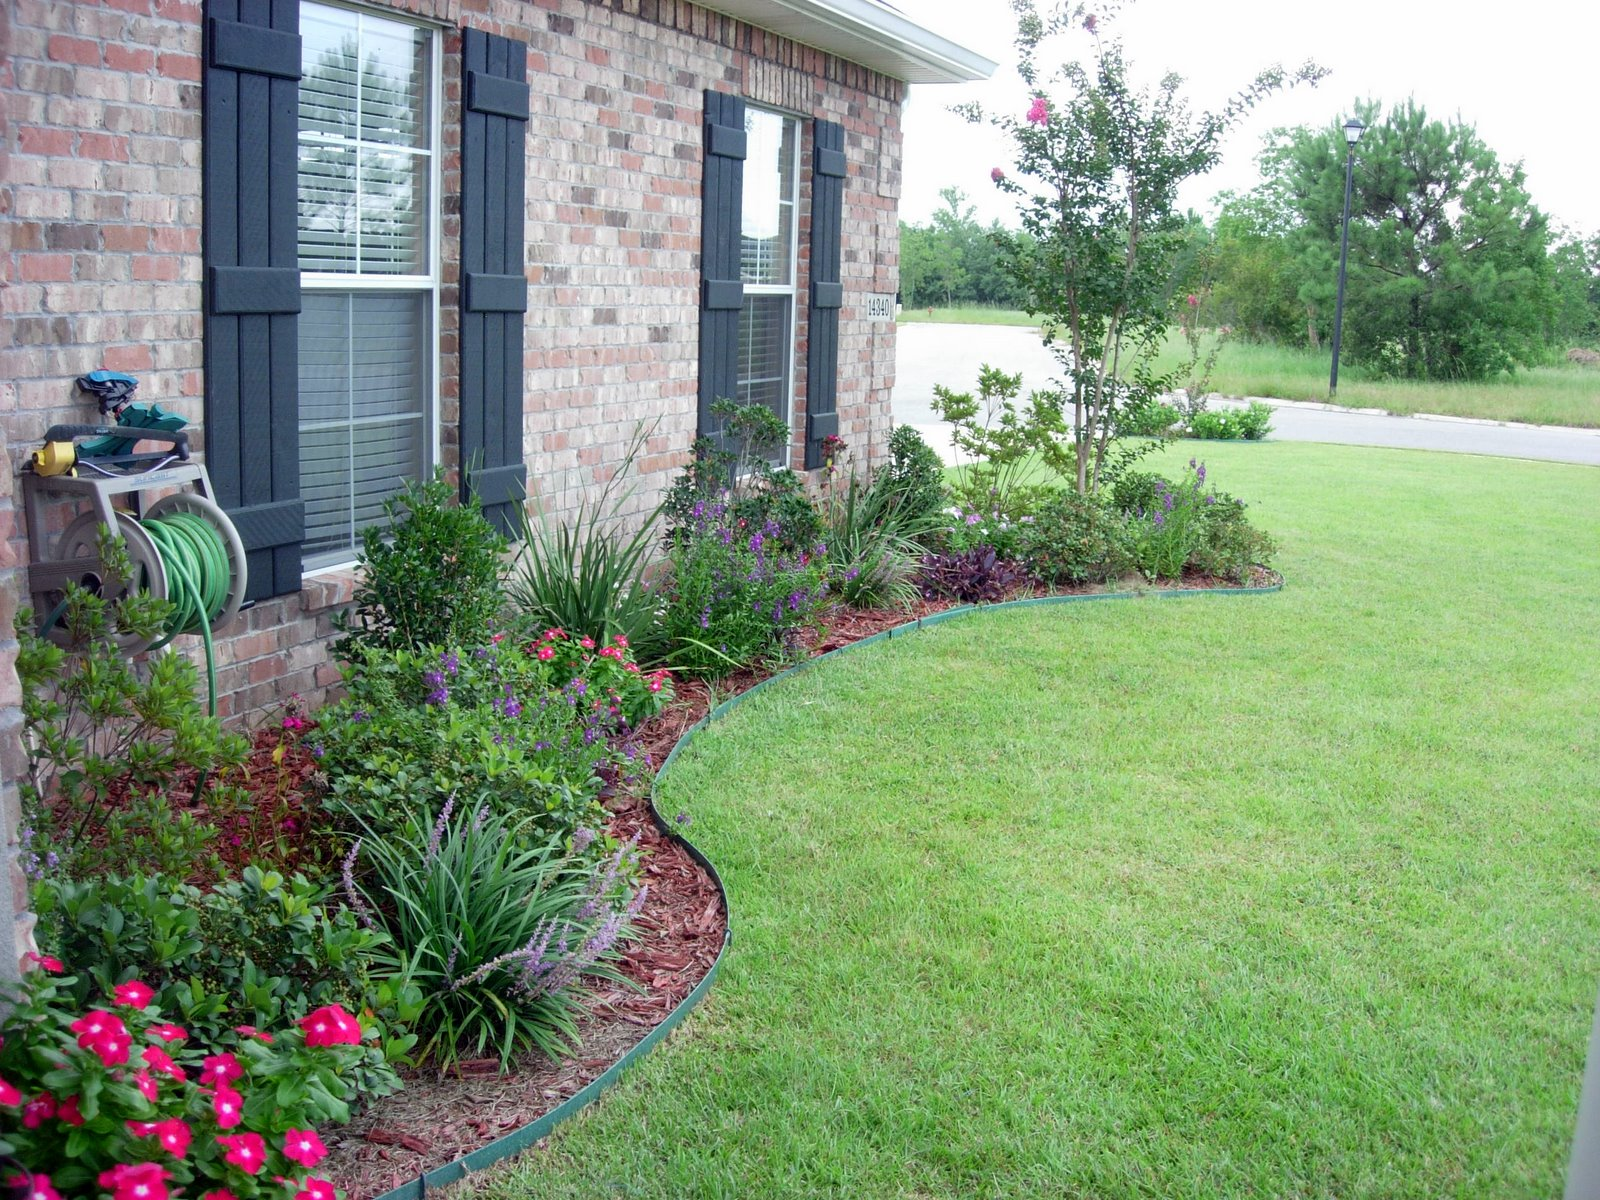 D i y d e s i g n curb appeal part 2 the landscaping for Home front landscaping